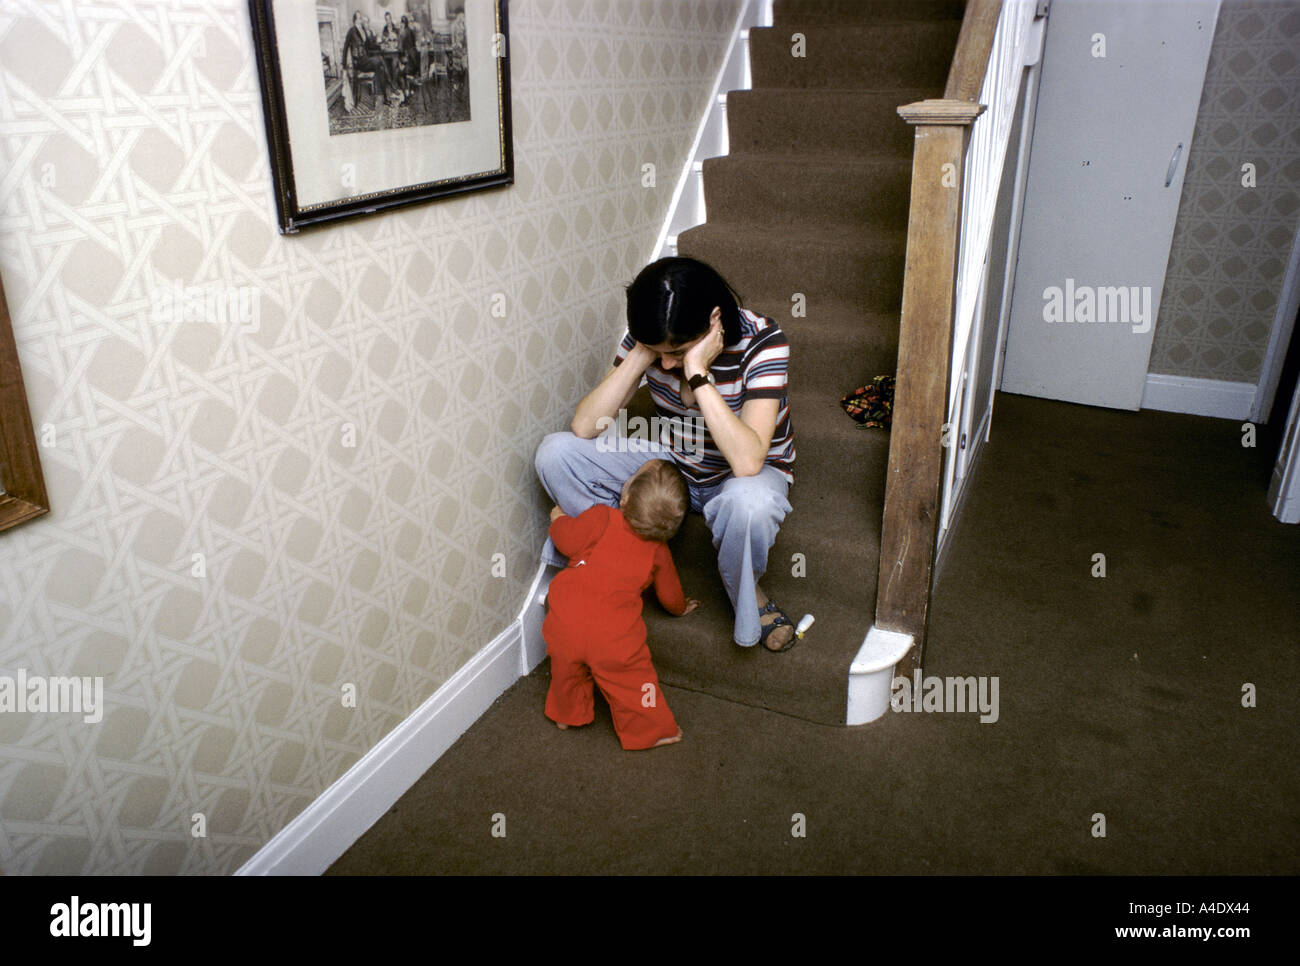 Woman suffering from depression sitting on a step at the bottom of the stairs with child looking at her - Stock Image